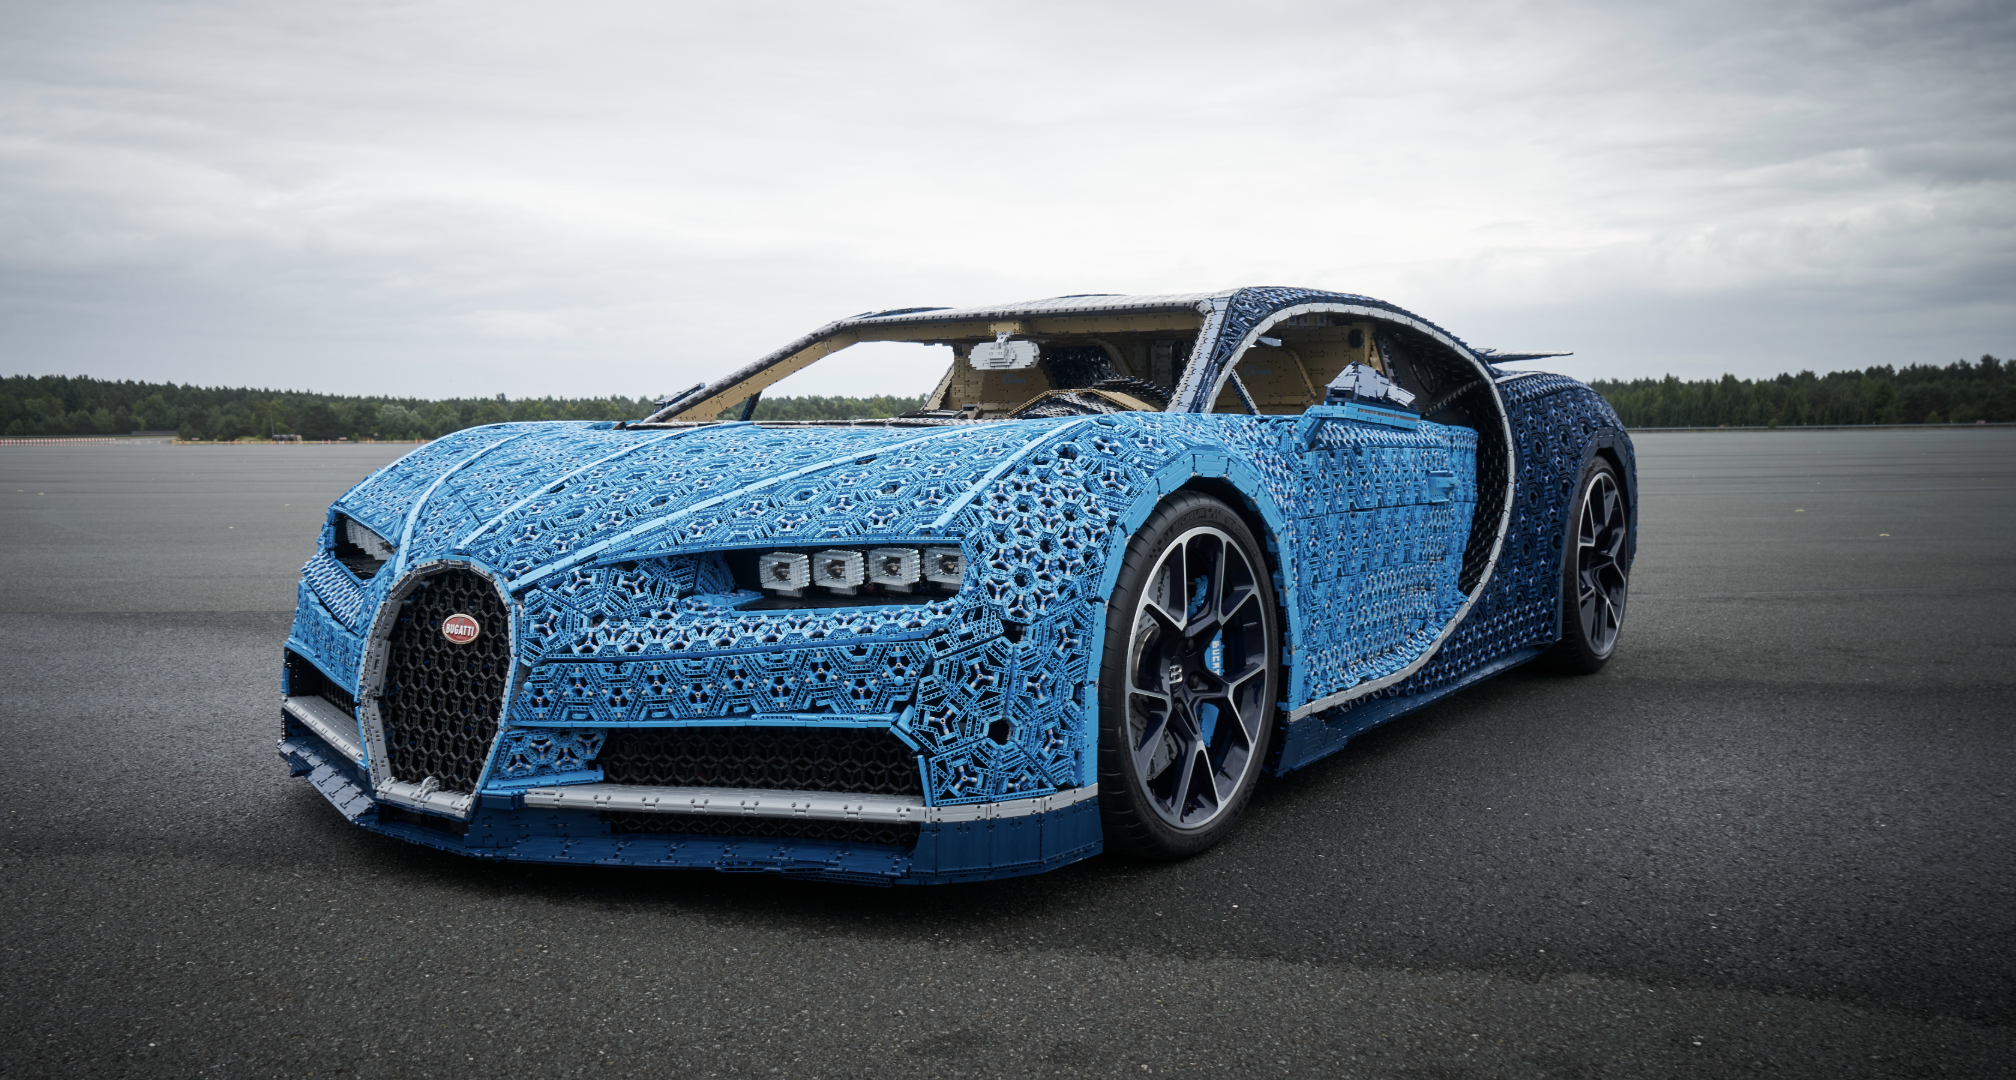 Lego Built A Life Size Drivable Bugatti From Over Million Technic Pieces Techcrunch